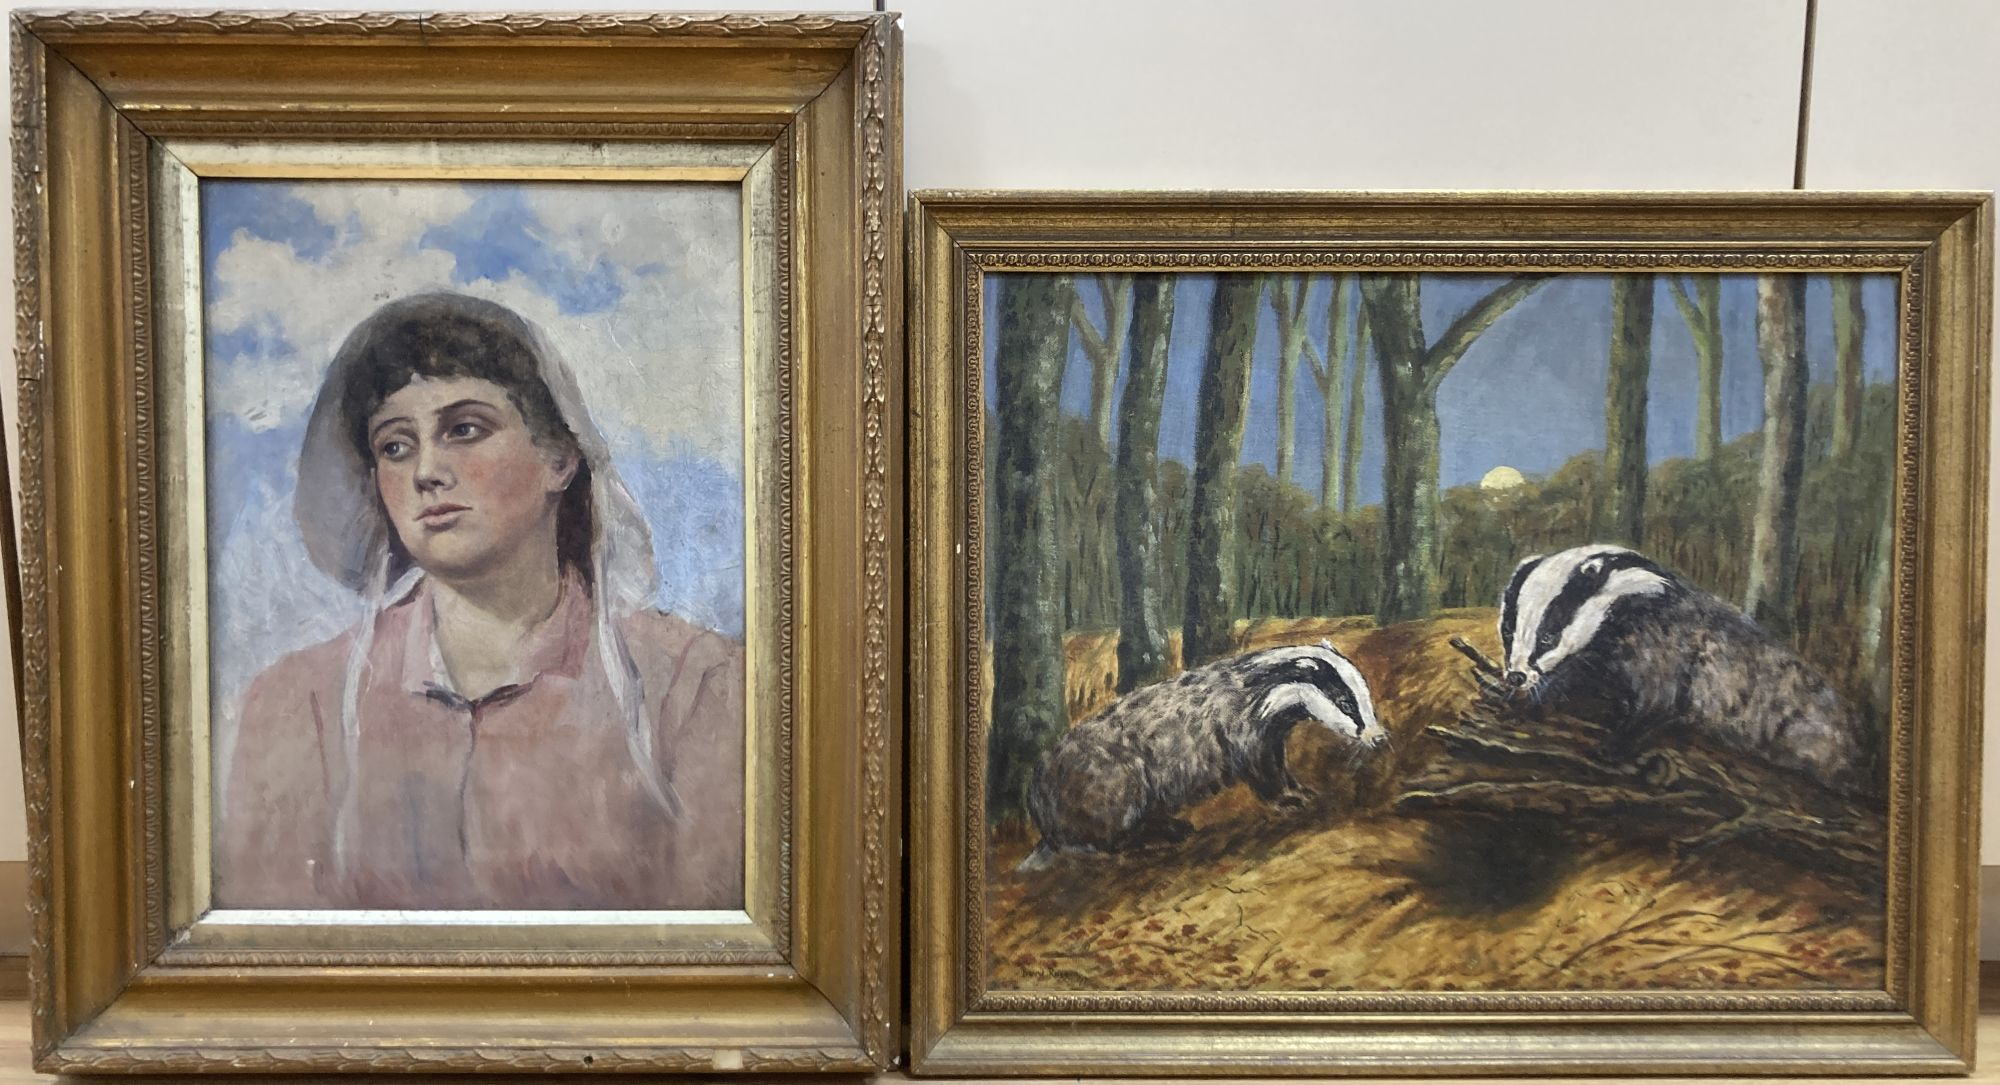 Early 20th century English School, oil on canvas, Portrait of a young woman, indistinctly signed